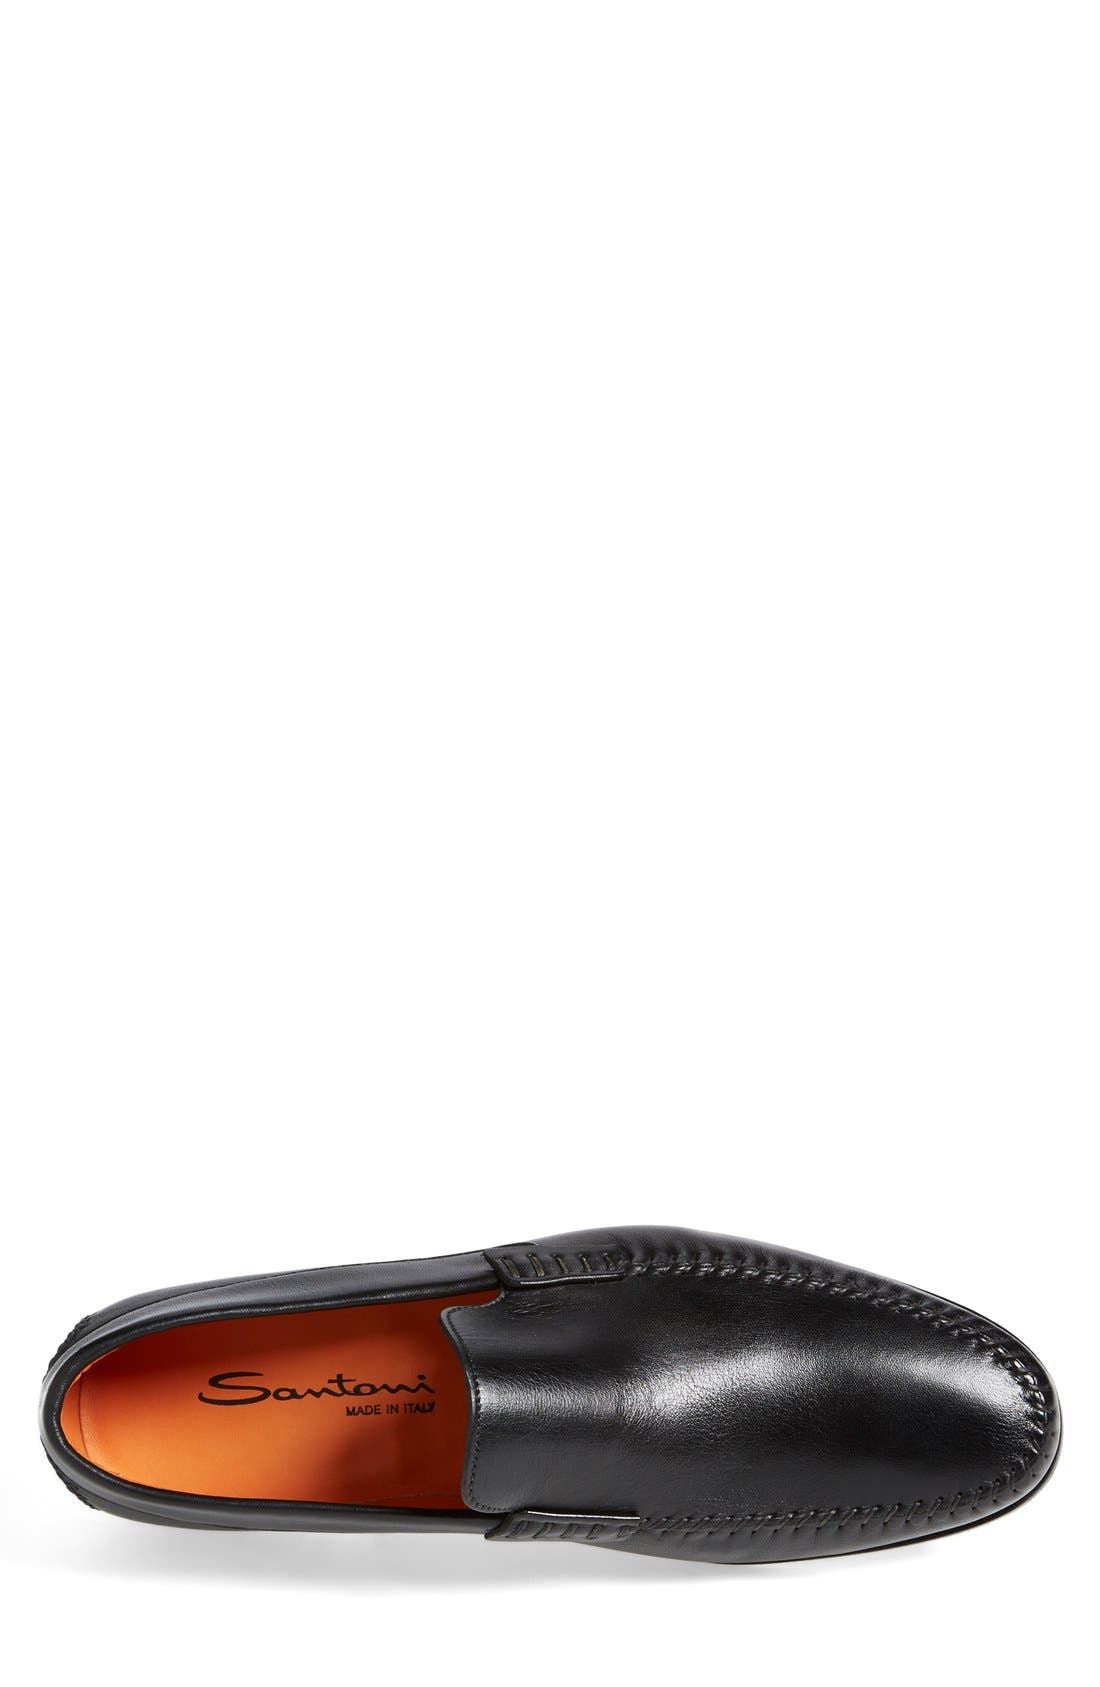 'Auburn' Venetian Loafer,                             Alternate thumbnail 3, color,                             Black Leather